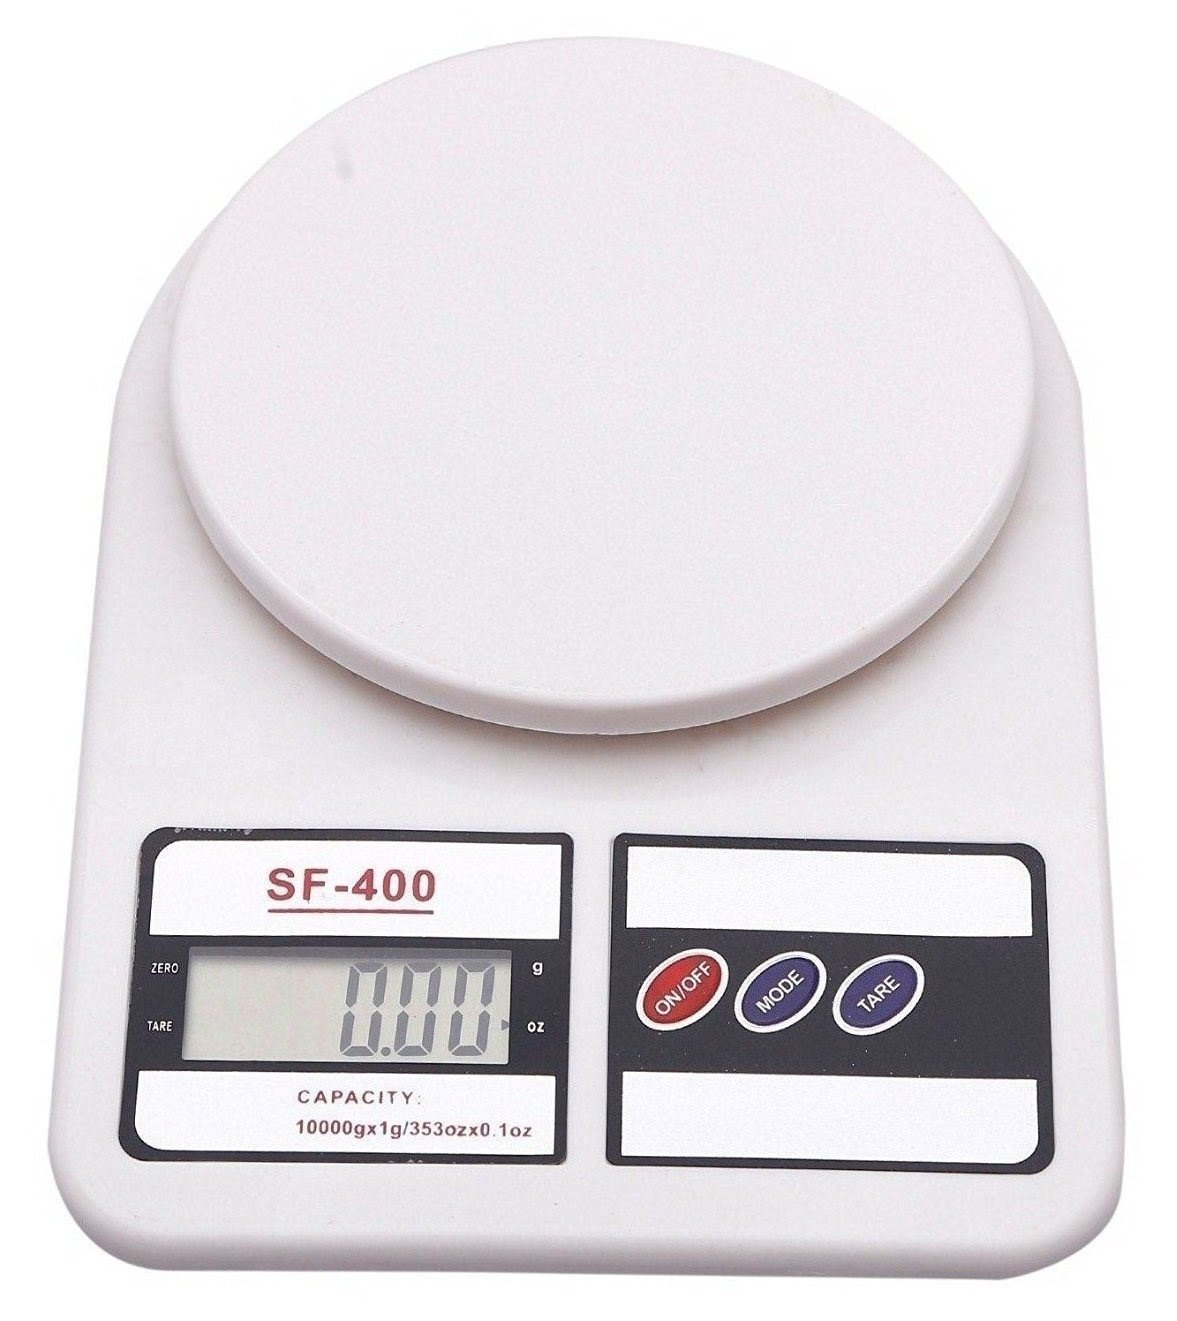 Deals on Bulfyss Electronic Kitchen Digital Weighing Scale 10 Kg